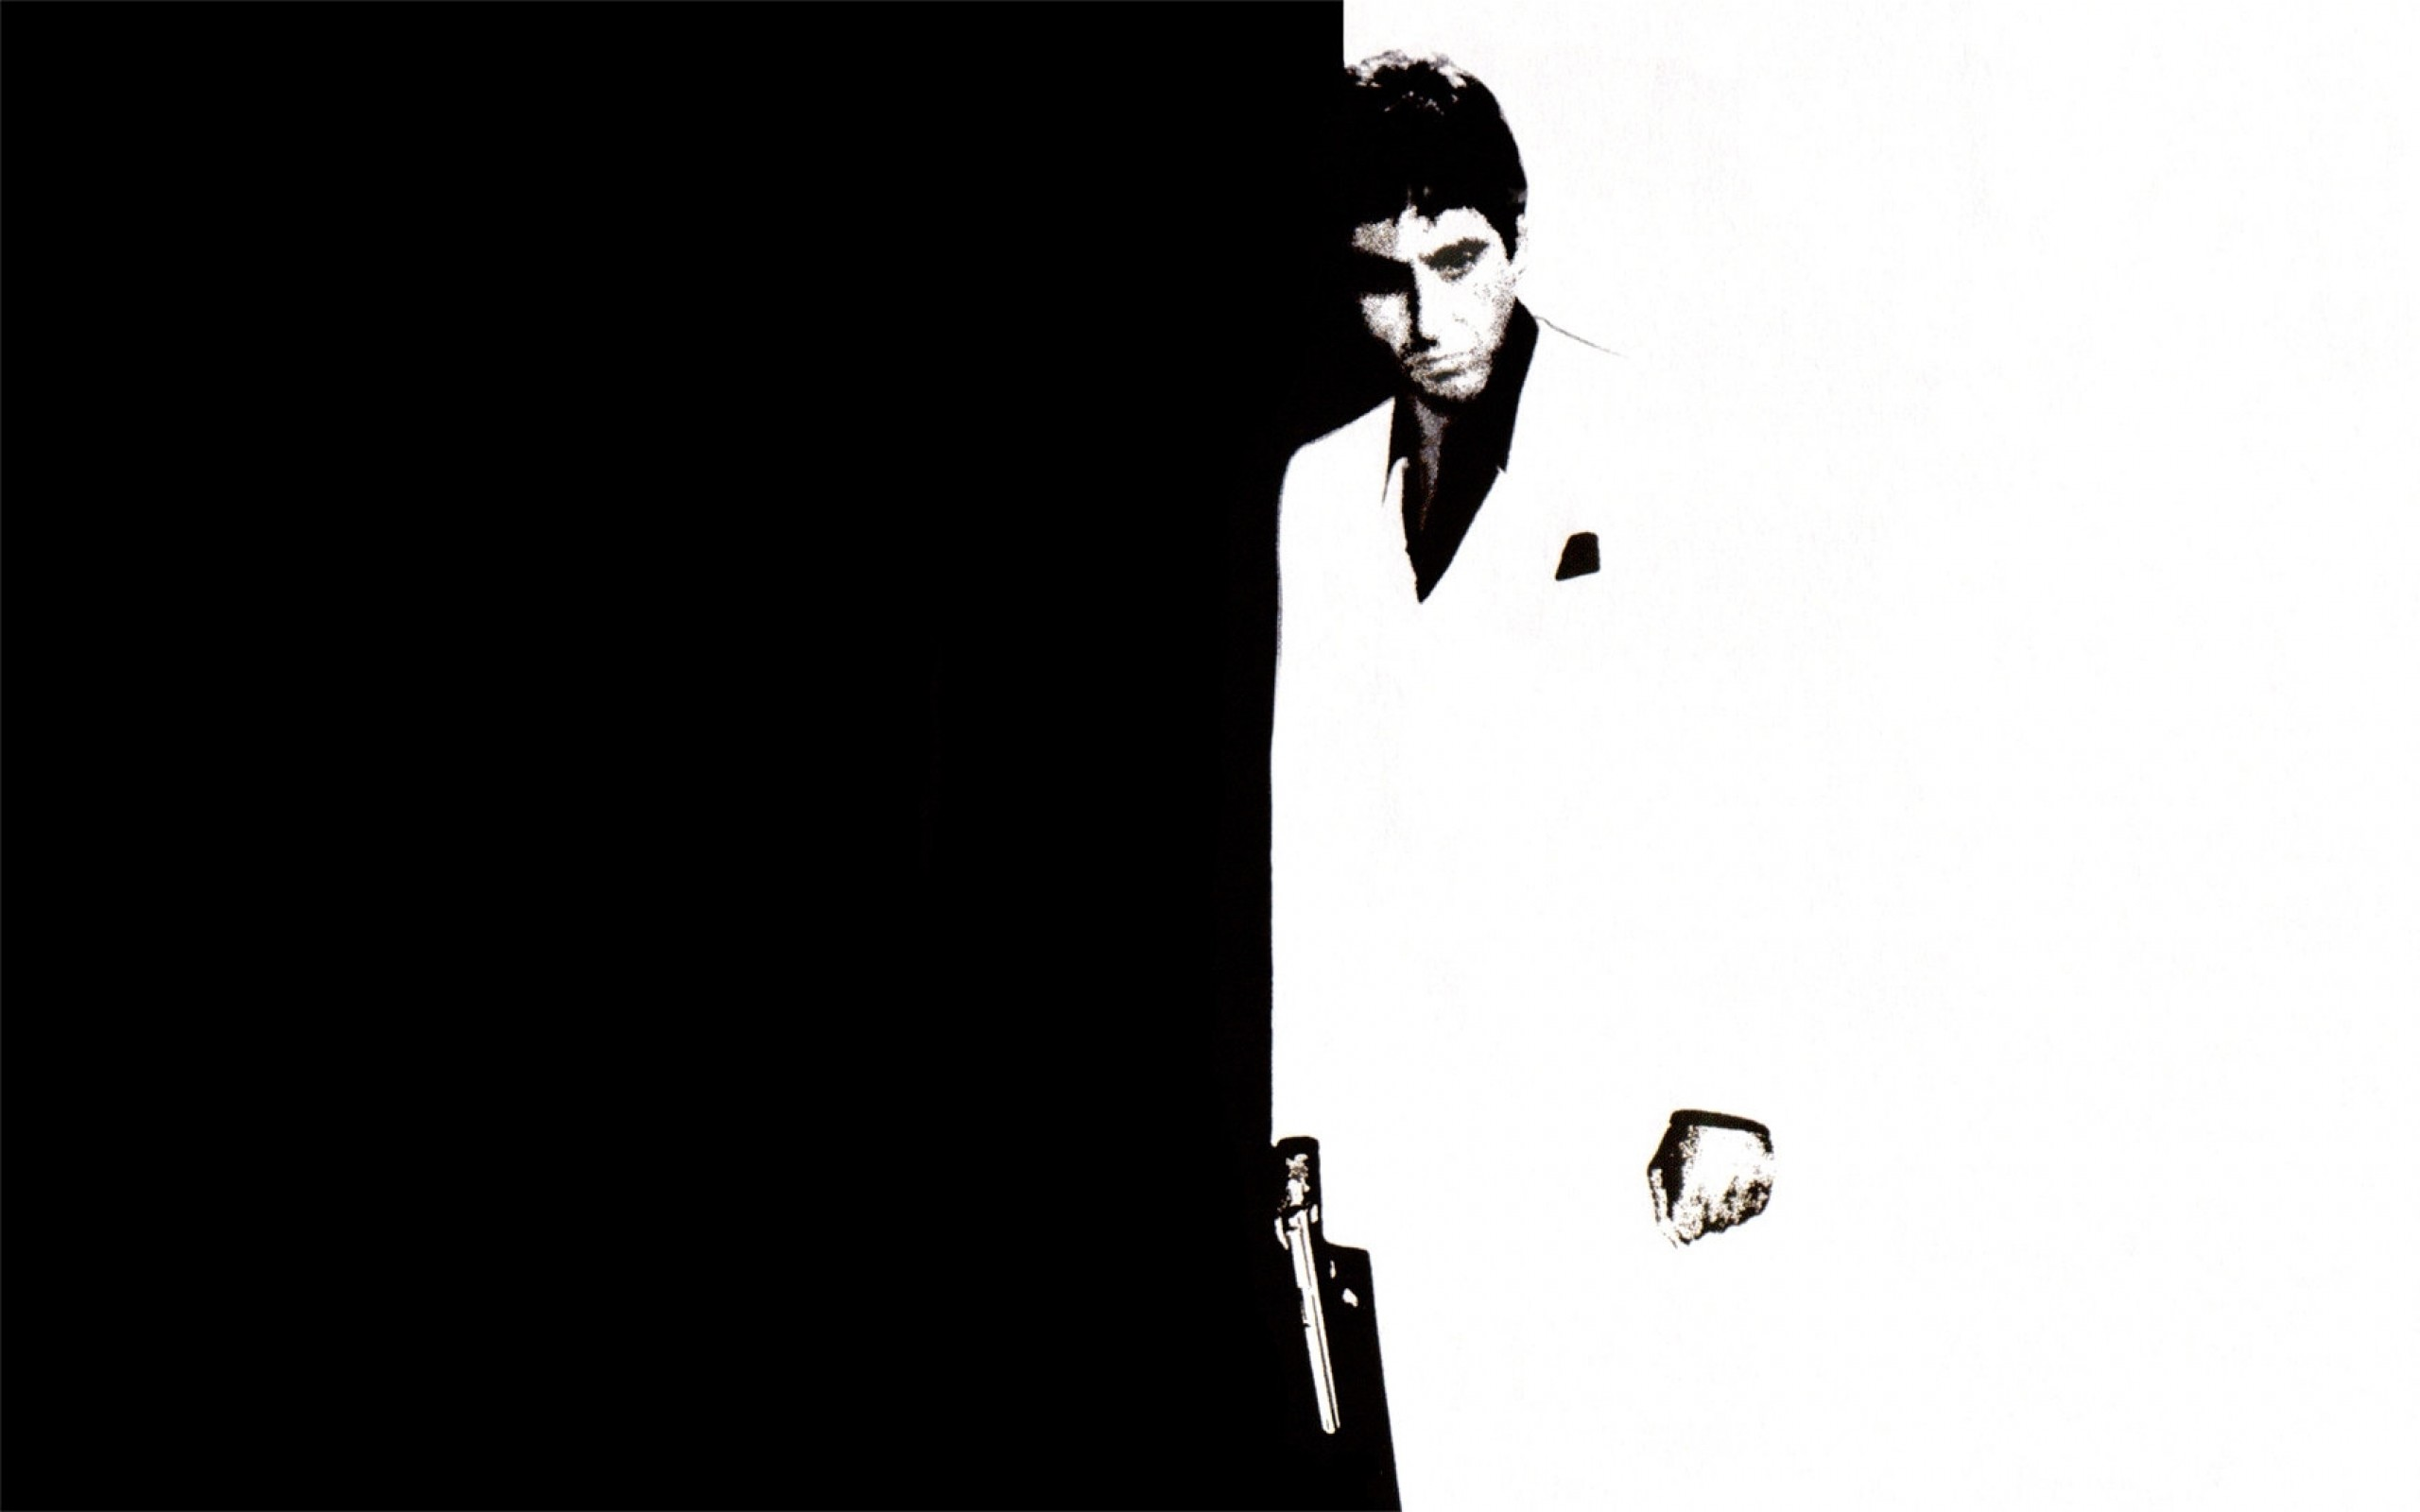 Scarface Full Hd Wallpaper Tony Montana Wallpaper Downloads Images Wallpaper And